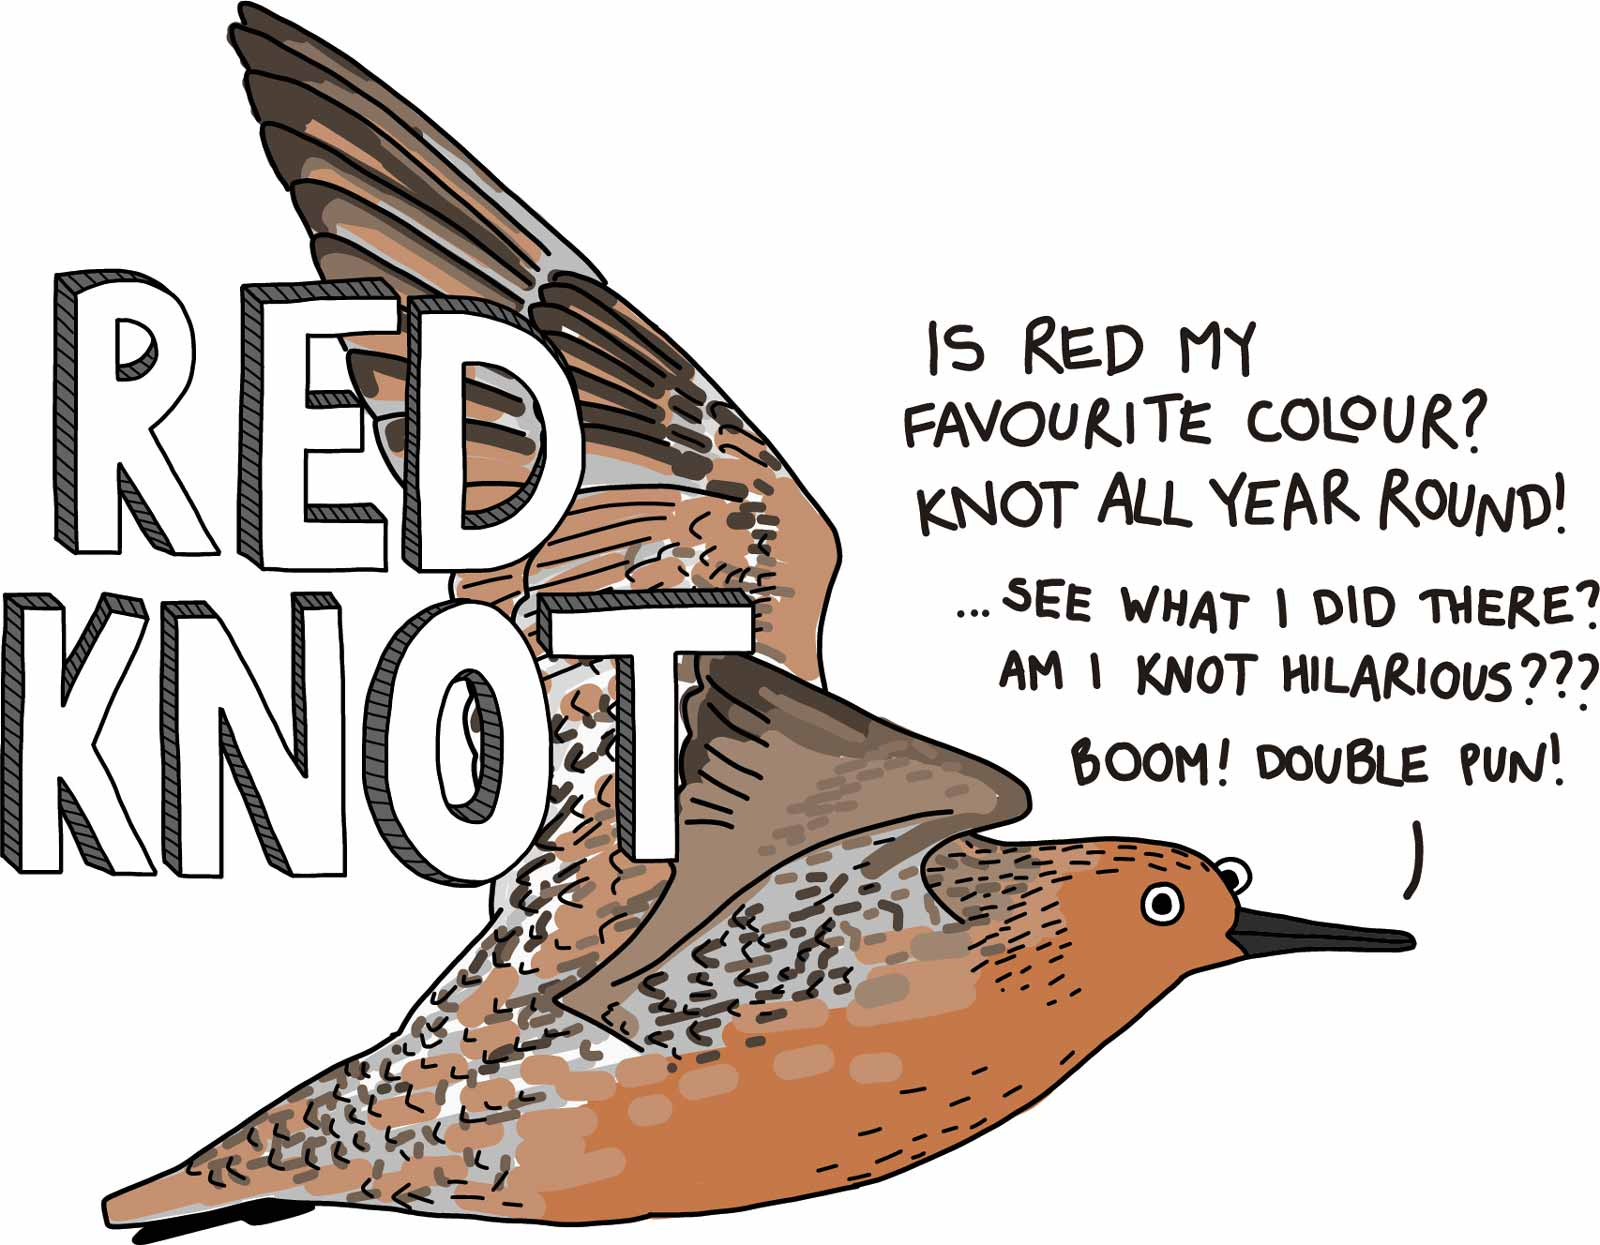 Cartoon of a red knot with block text